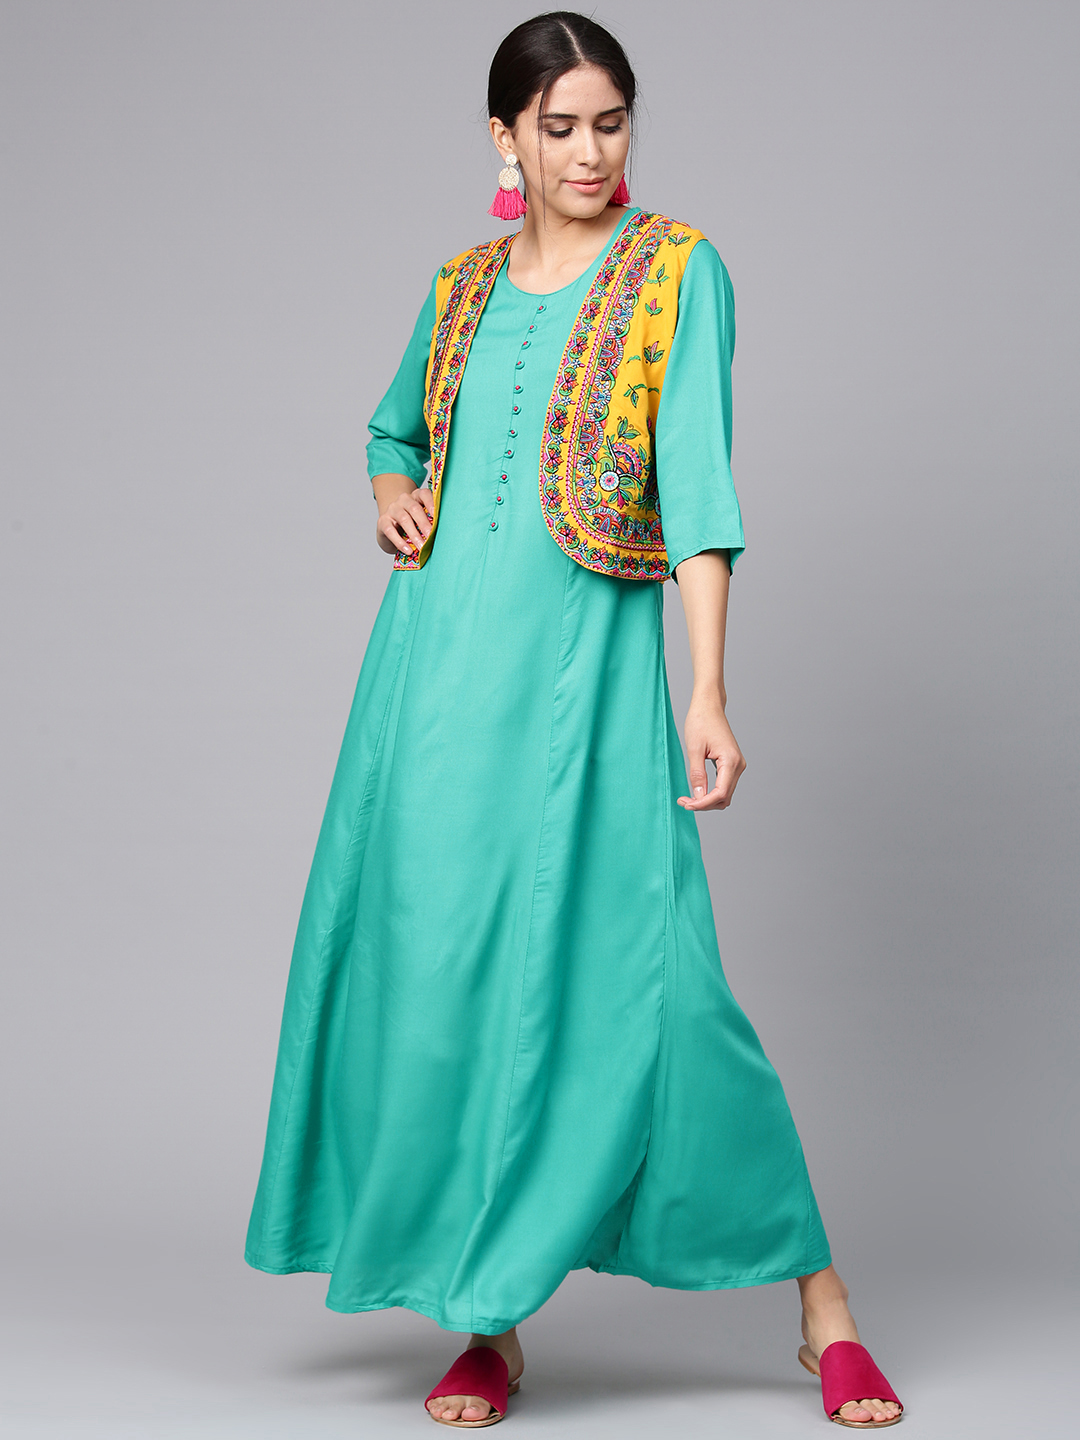 Shree Women Green & Mustard Yellow Solid Maxi Dress with Ethnic Jacket Price in India